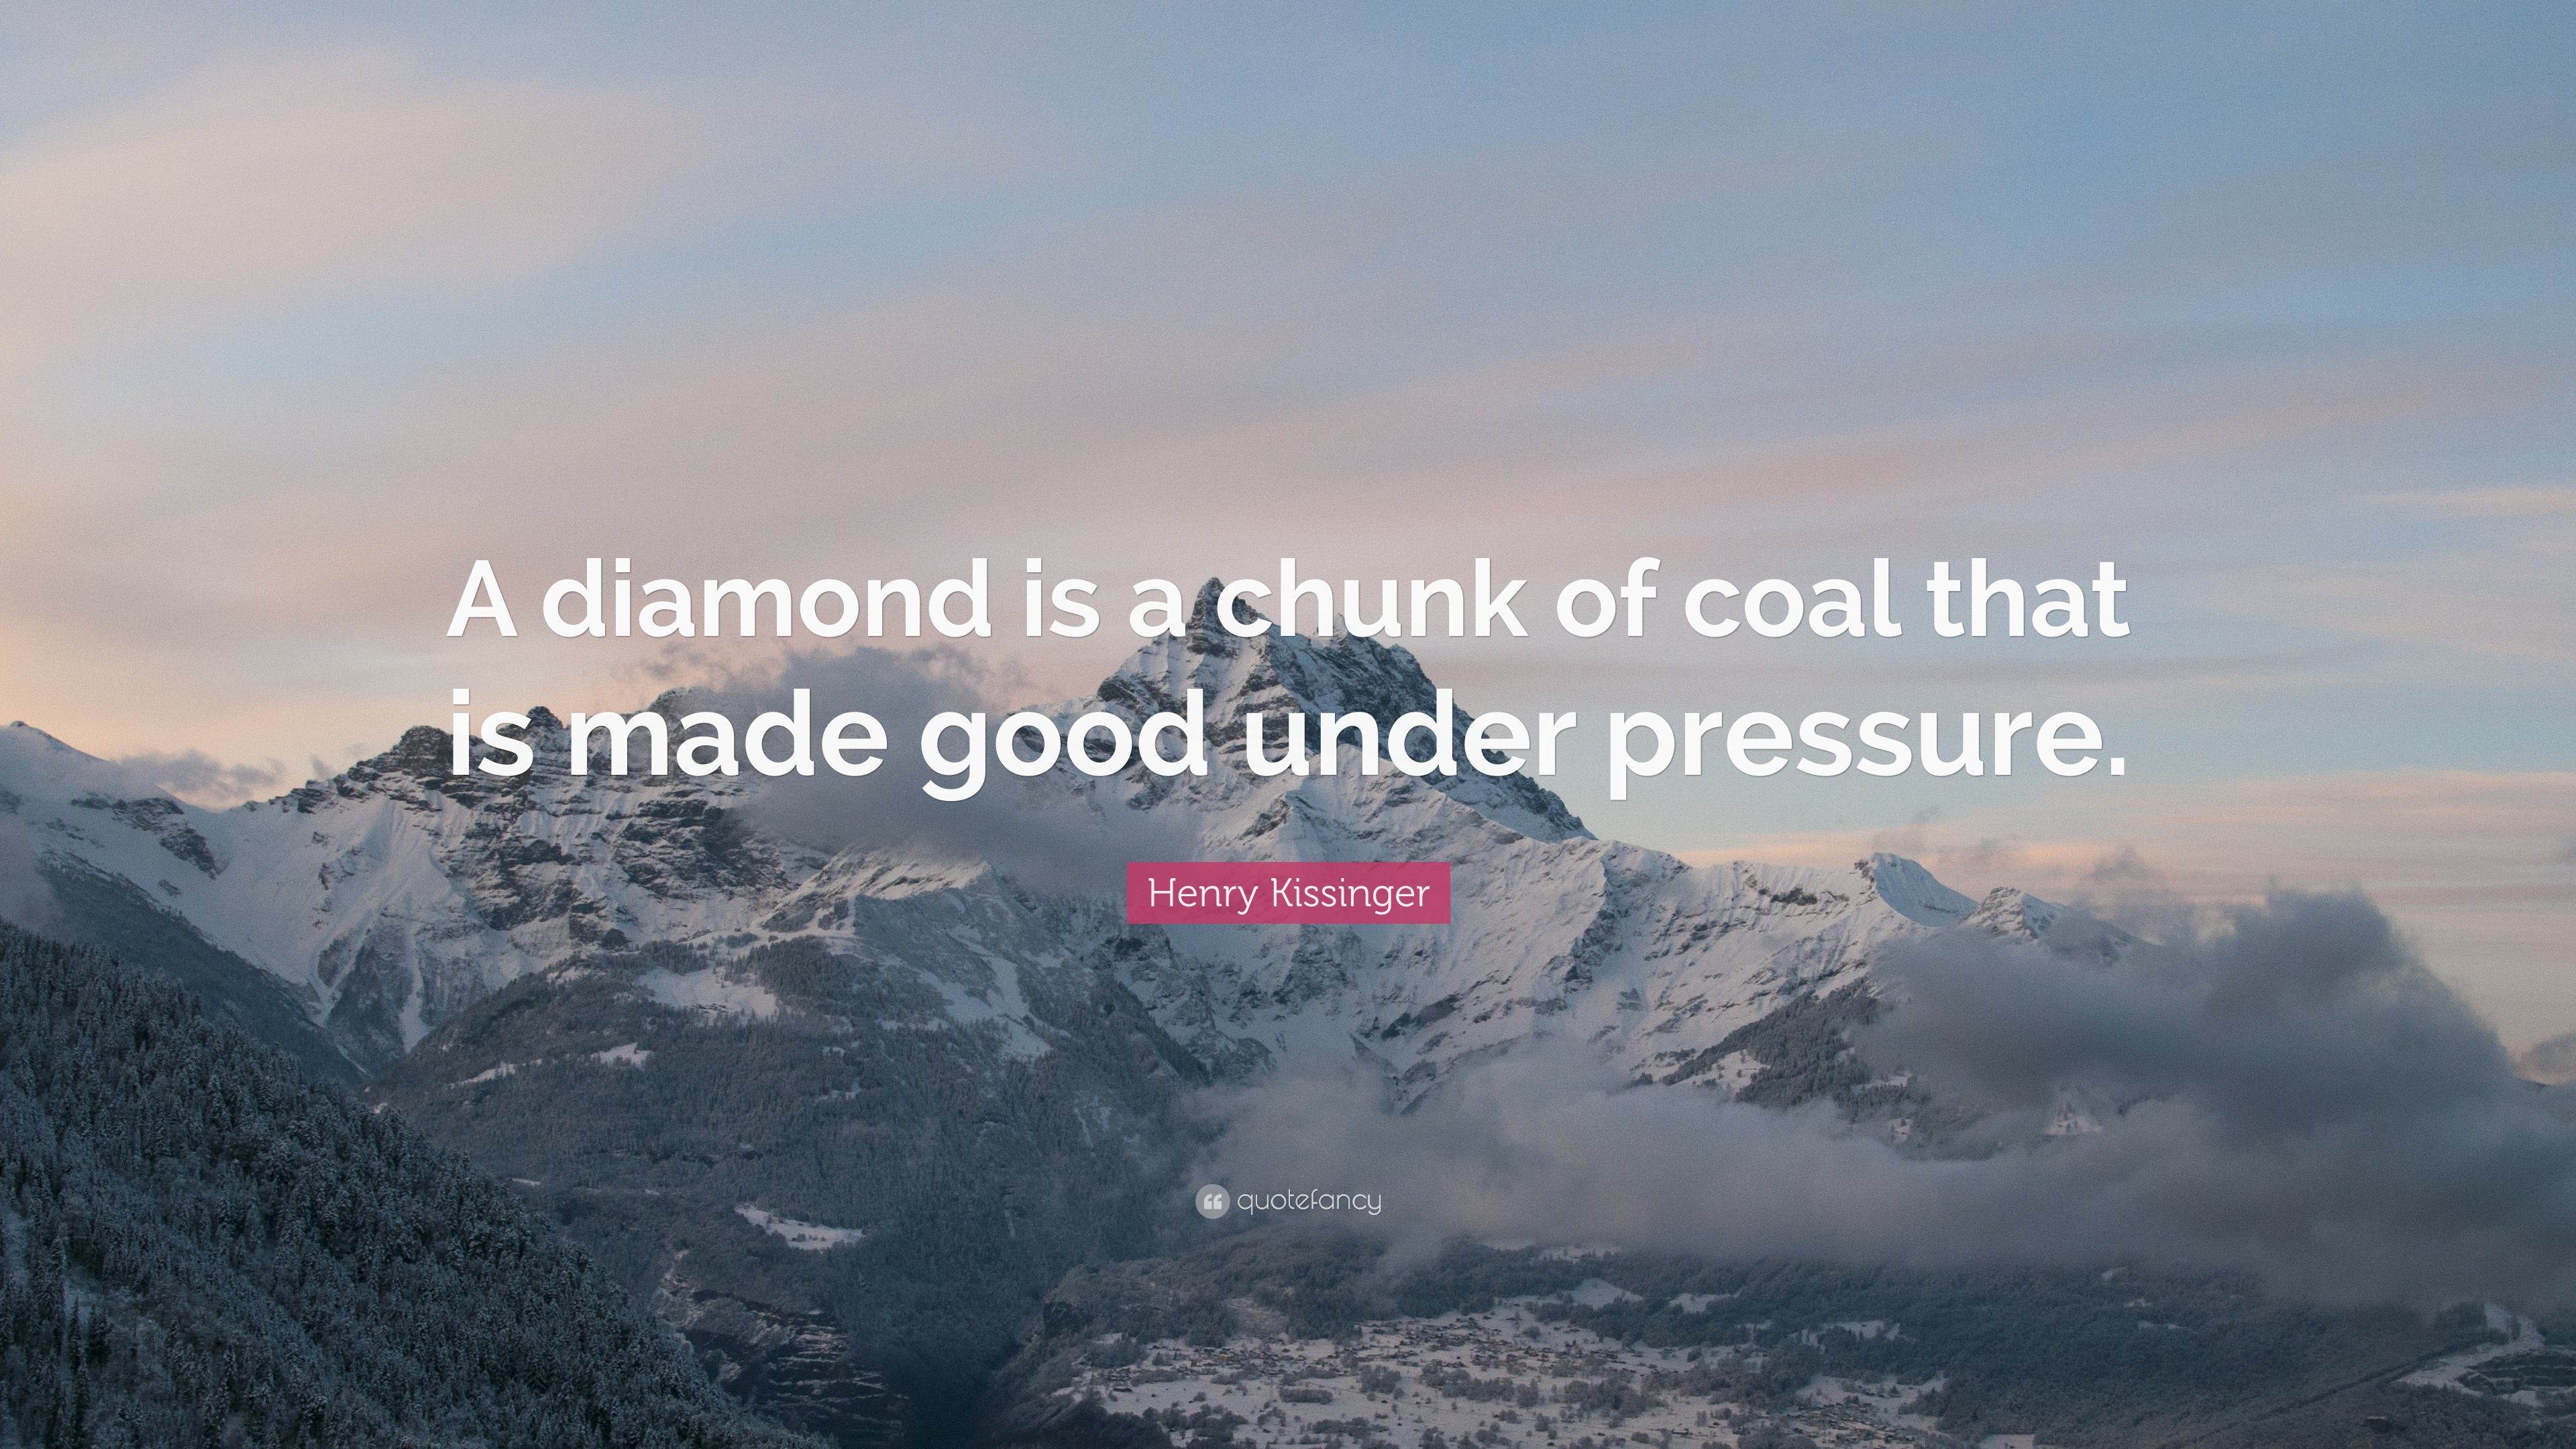 coal quote good a diamond henry pressure under chunk made is of that kissinger